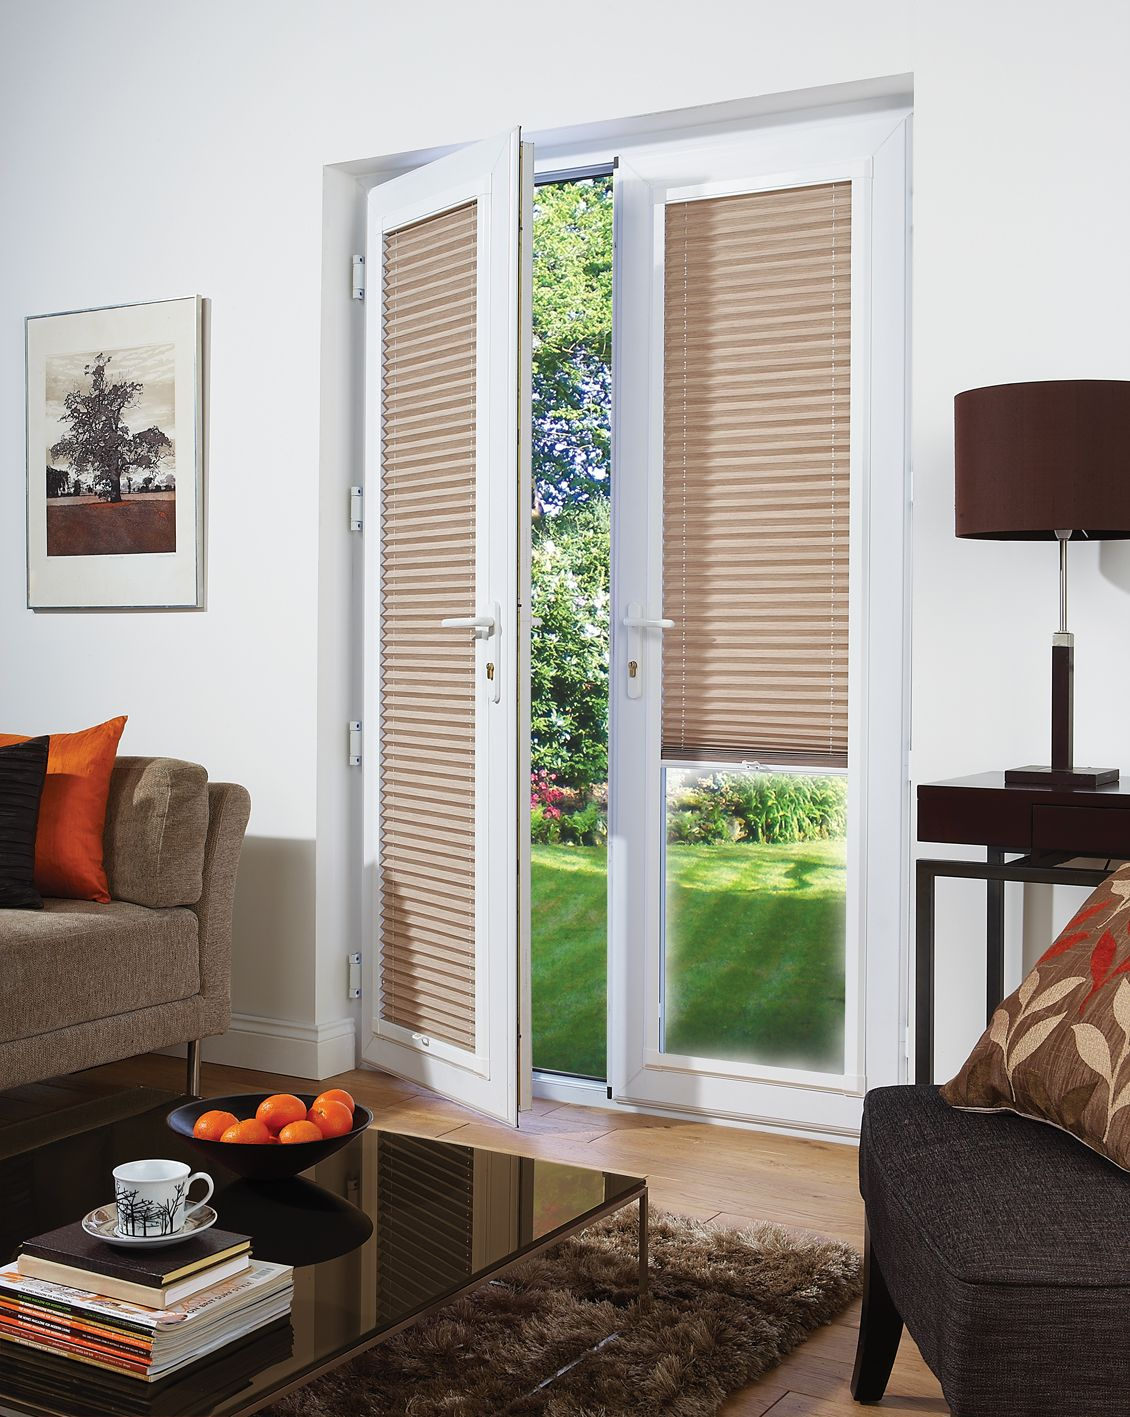 Magnetic Window Blinds As Important Elements Of Interior : Magnetic Blinds  For Doors With Windows. Magnetic Blinds For Doors With Windows.